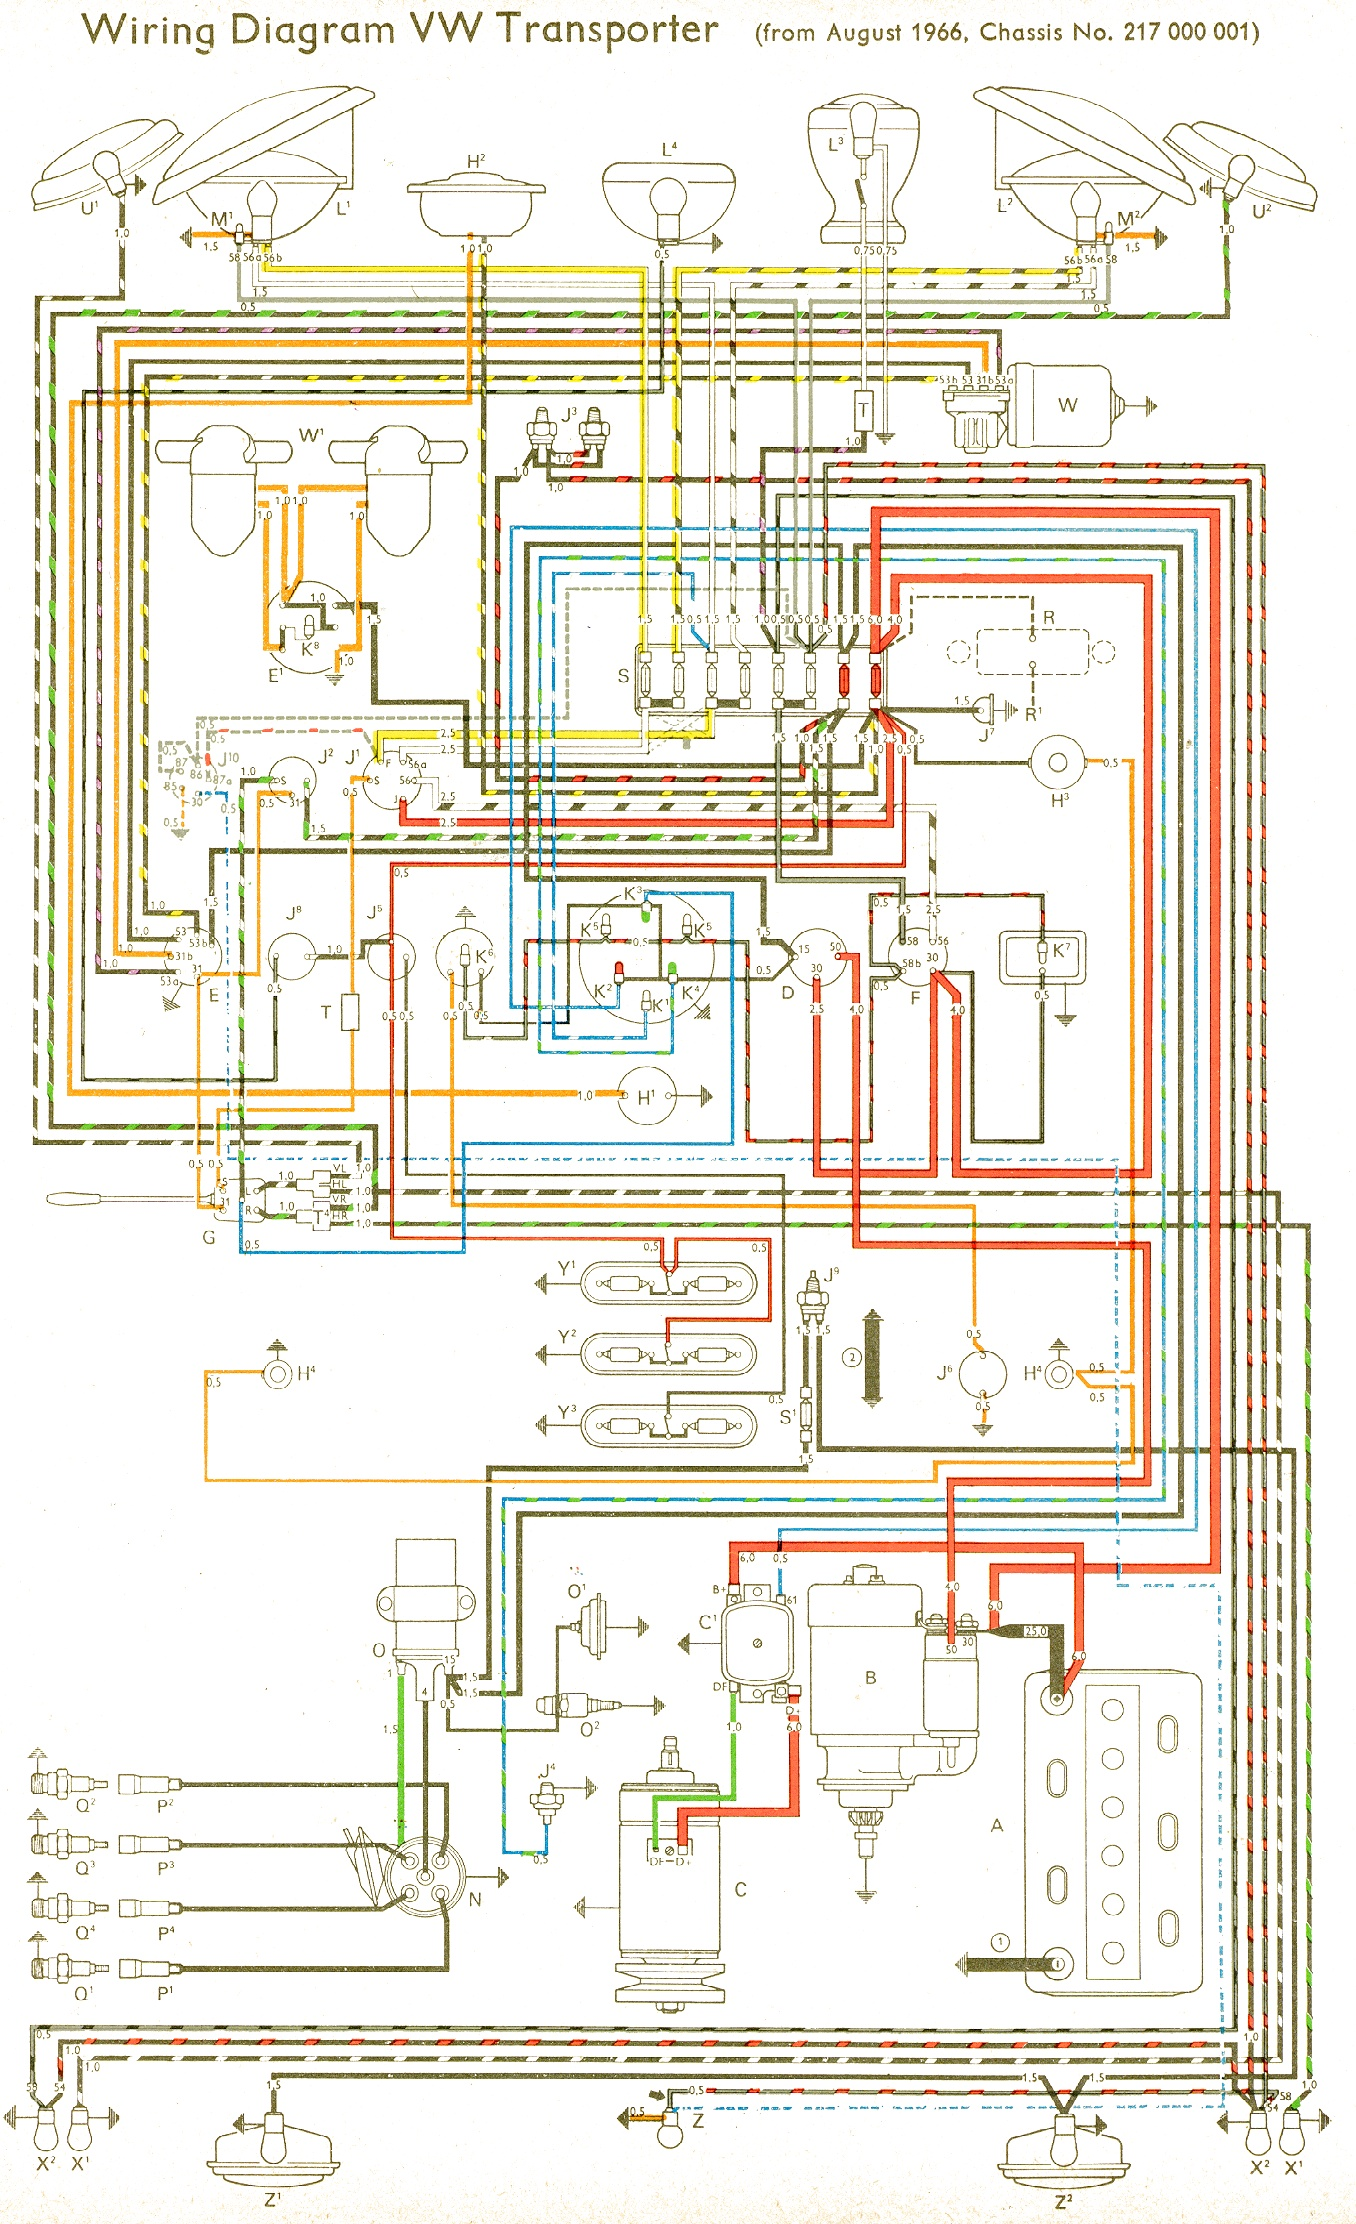 vw wiring diagrams rh volkspower nl 2003 VW Jetta Fuse Diagram 2003 VW  Jetta Fuse Diagram